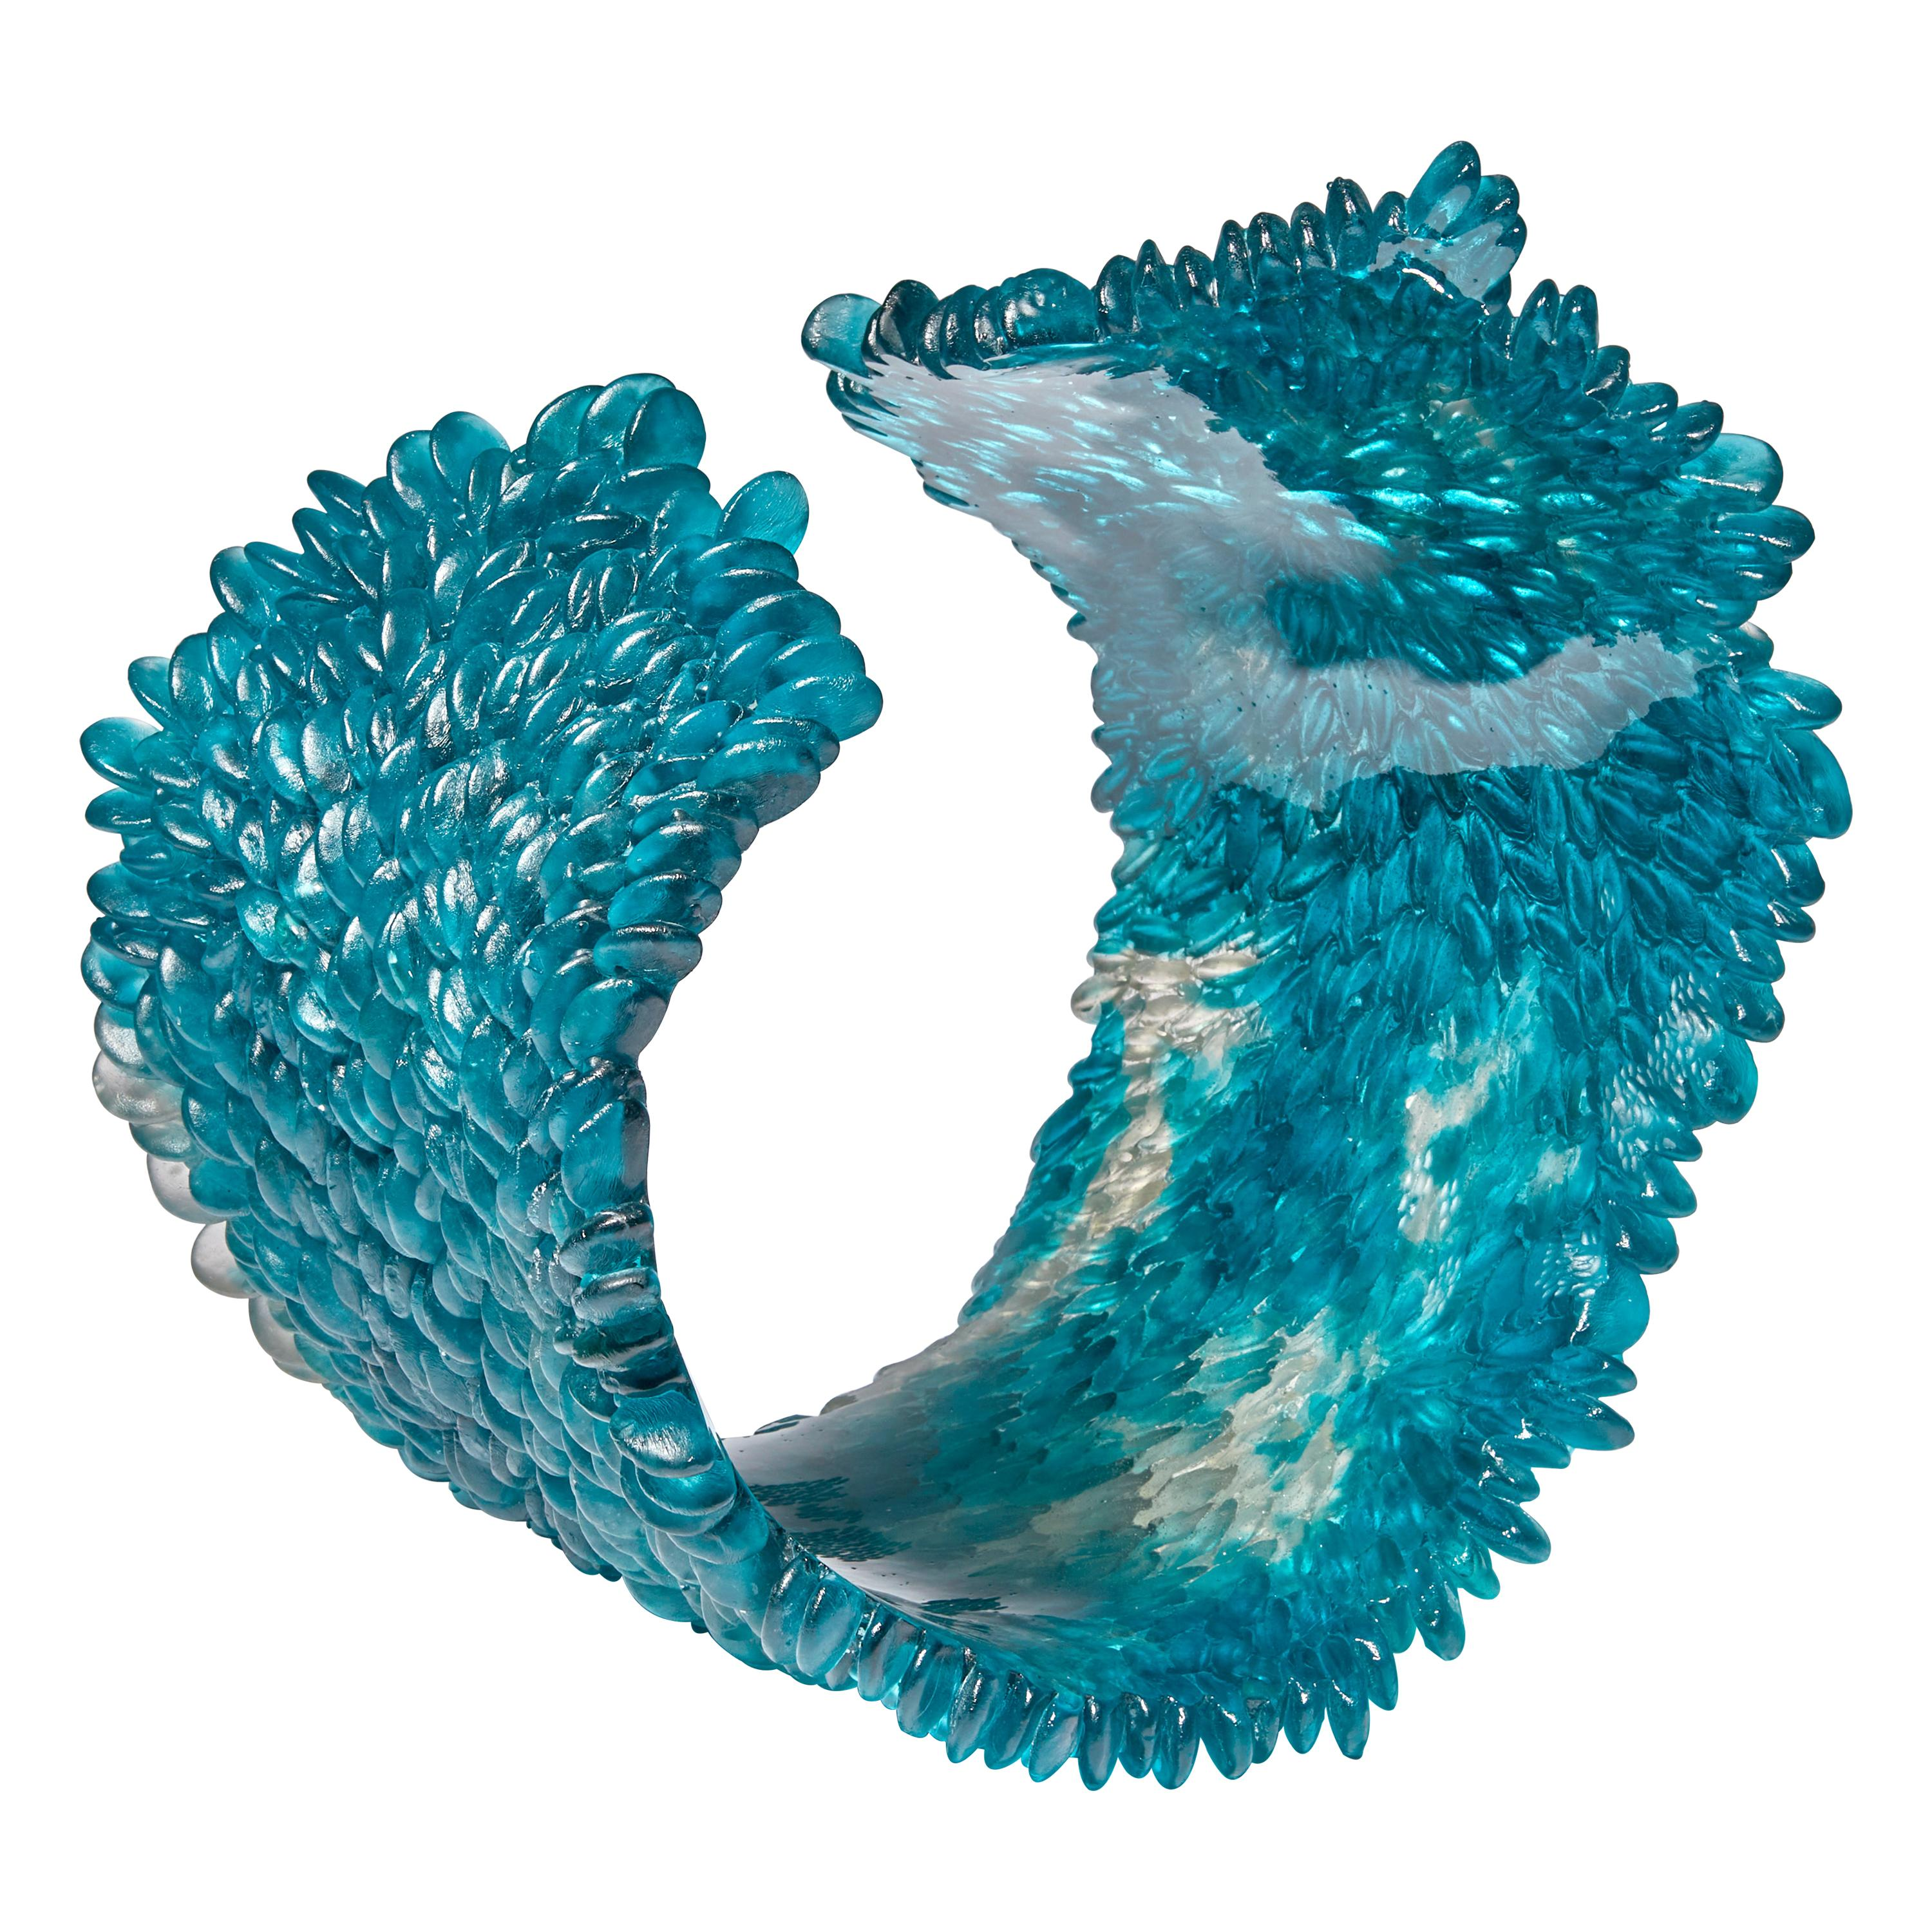 Curled Over V, a Unique Glass Sculpture in Teal & Grey by Nina Casson McGarva